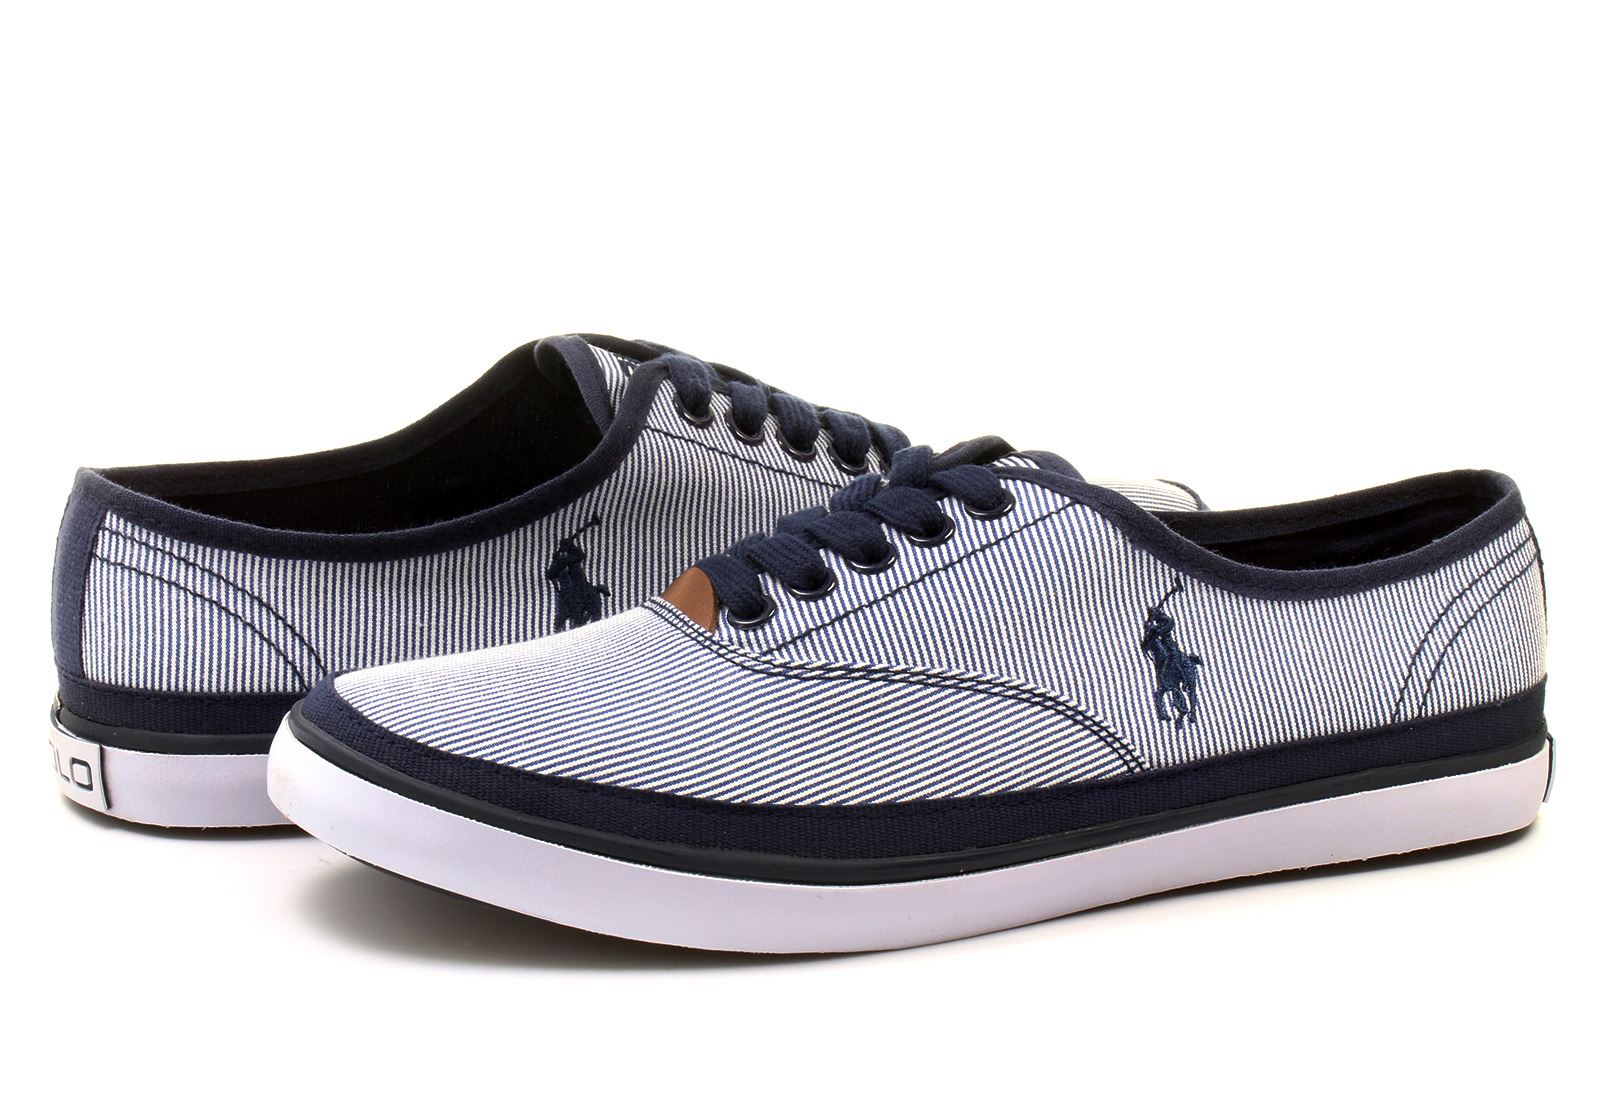 polo ralph lauren sneakers oran ii 354 b e4g5g online shop for sneakers shoes and boots. Black Bedroom Furniture Sets. Home Design Ideas